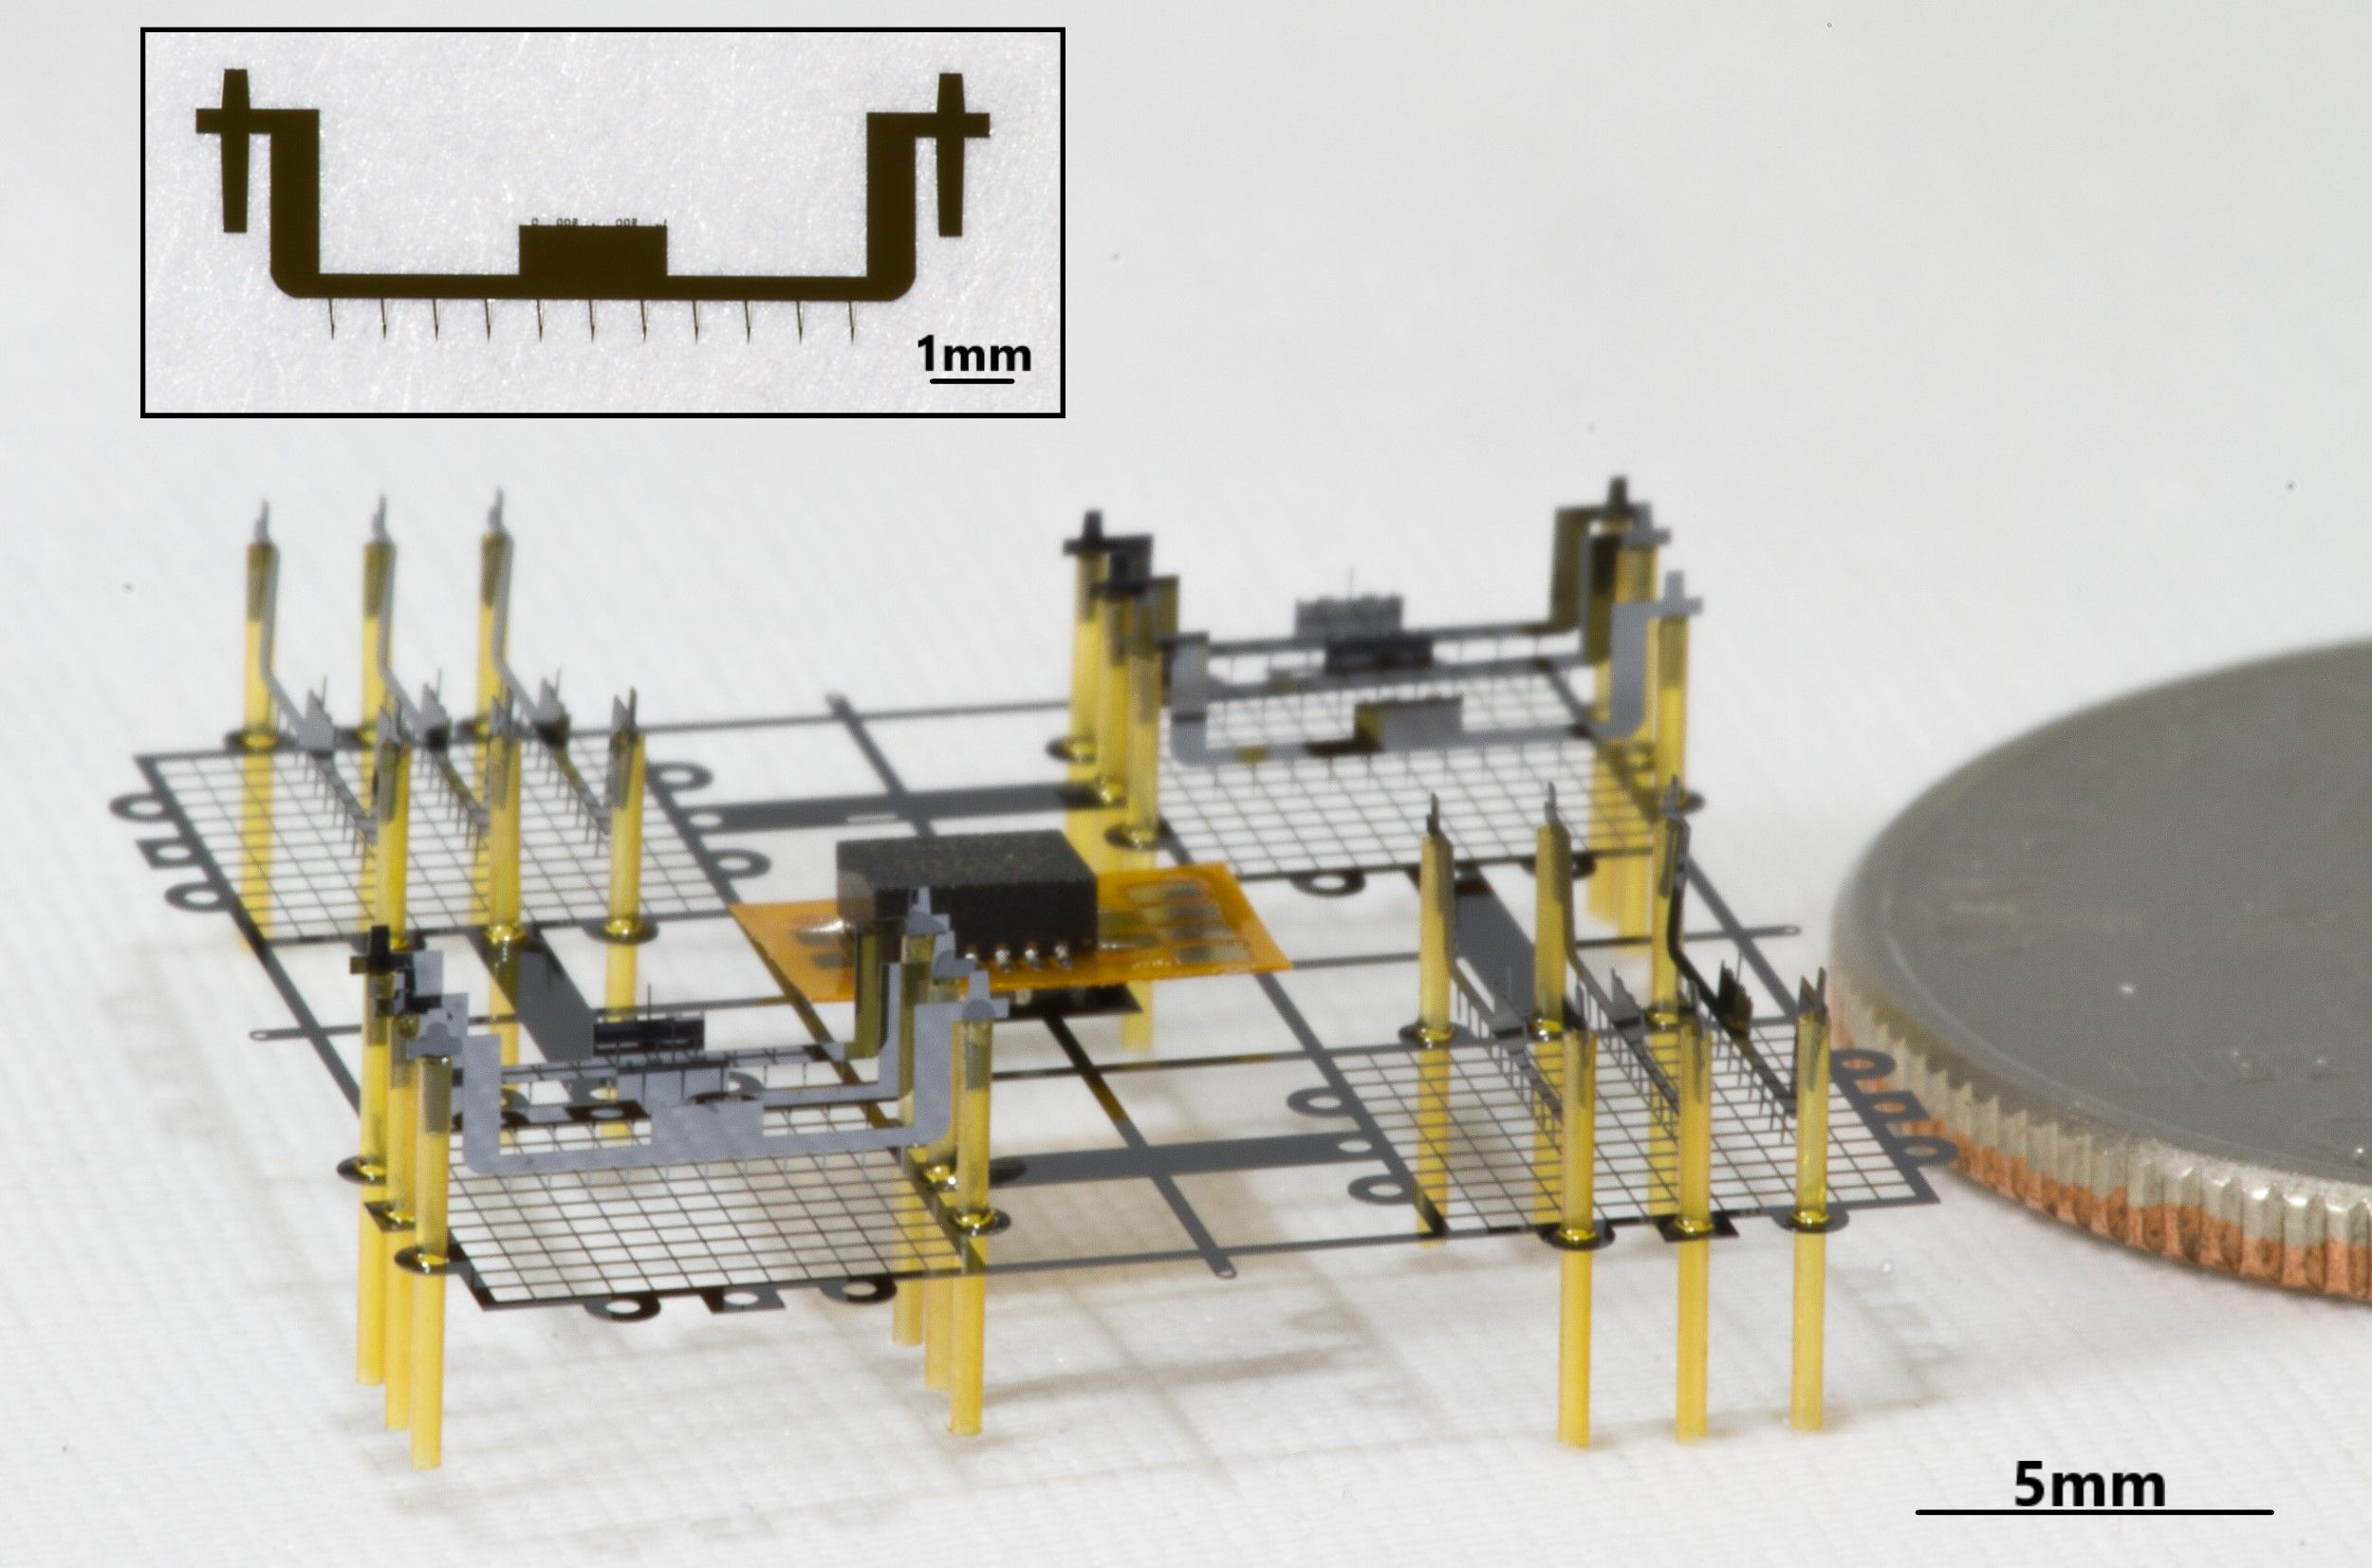 A drone powered by electrohydrodynamic thrust is the smallest flying robot ever made